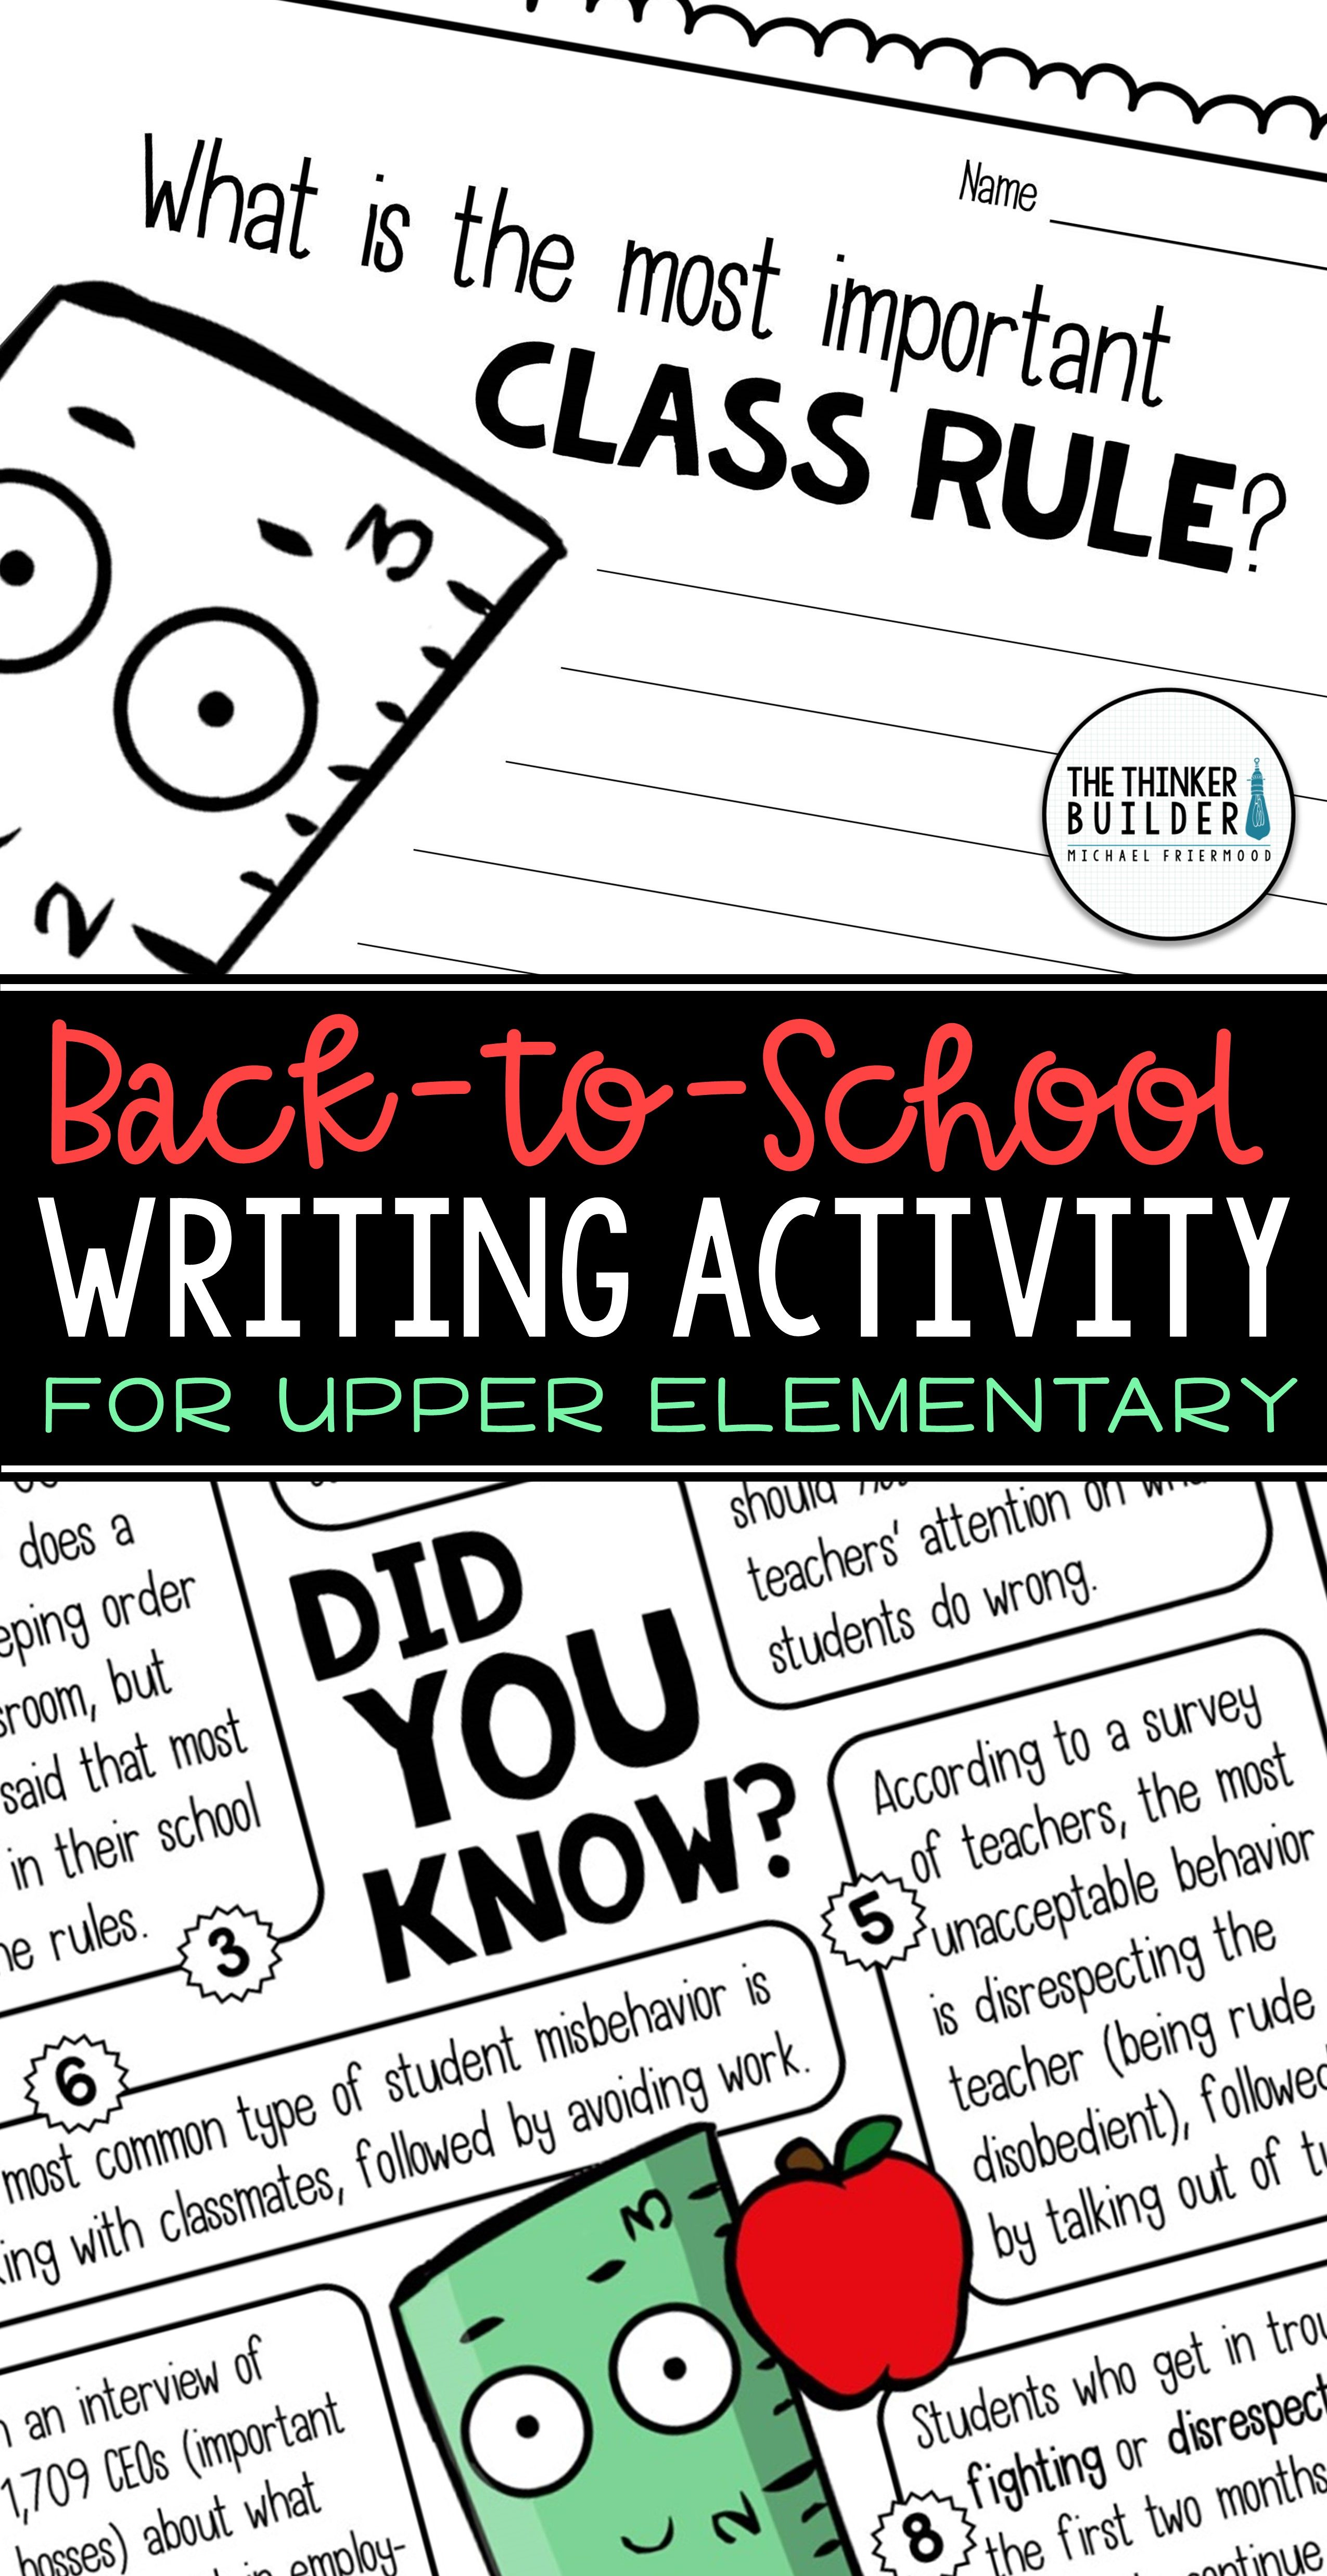 Opinion Writing For Back To School Season Includes Carefully Chosen Facts For Students To Analyze Opinion Writing Lessons Writing Lessons Persuasive Writing